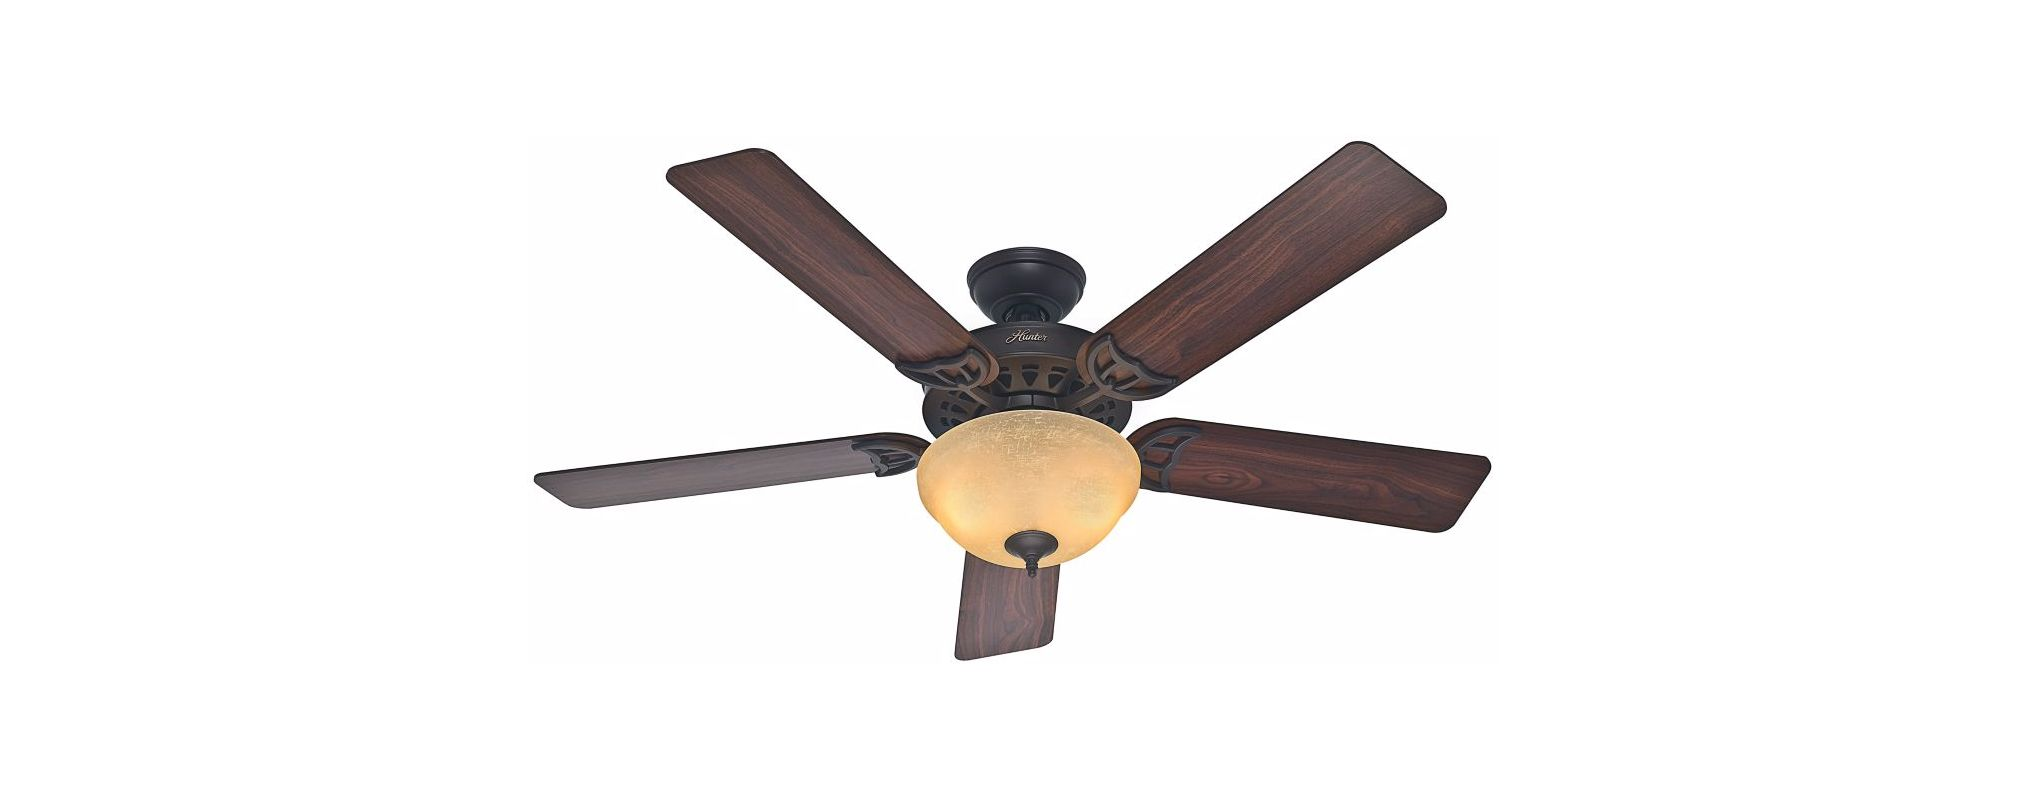 Hunter ceiling fan light kit adapter : Hunter new bronze quot energy star rated indoor